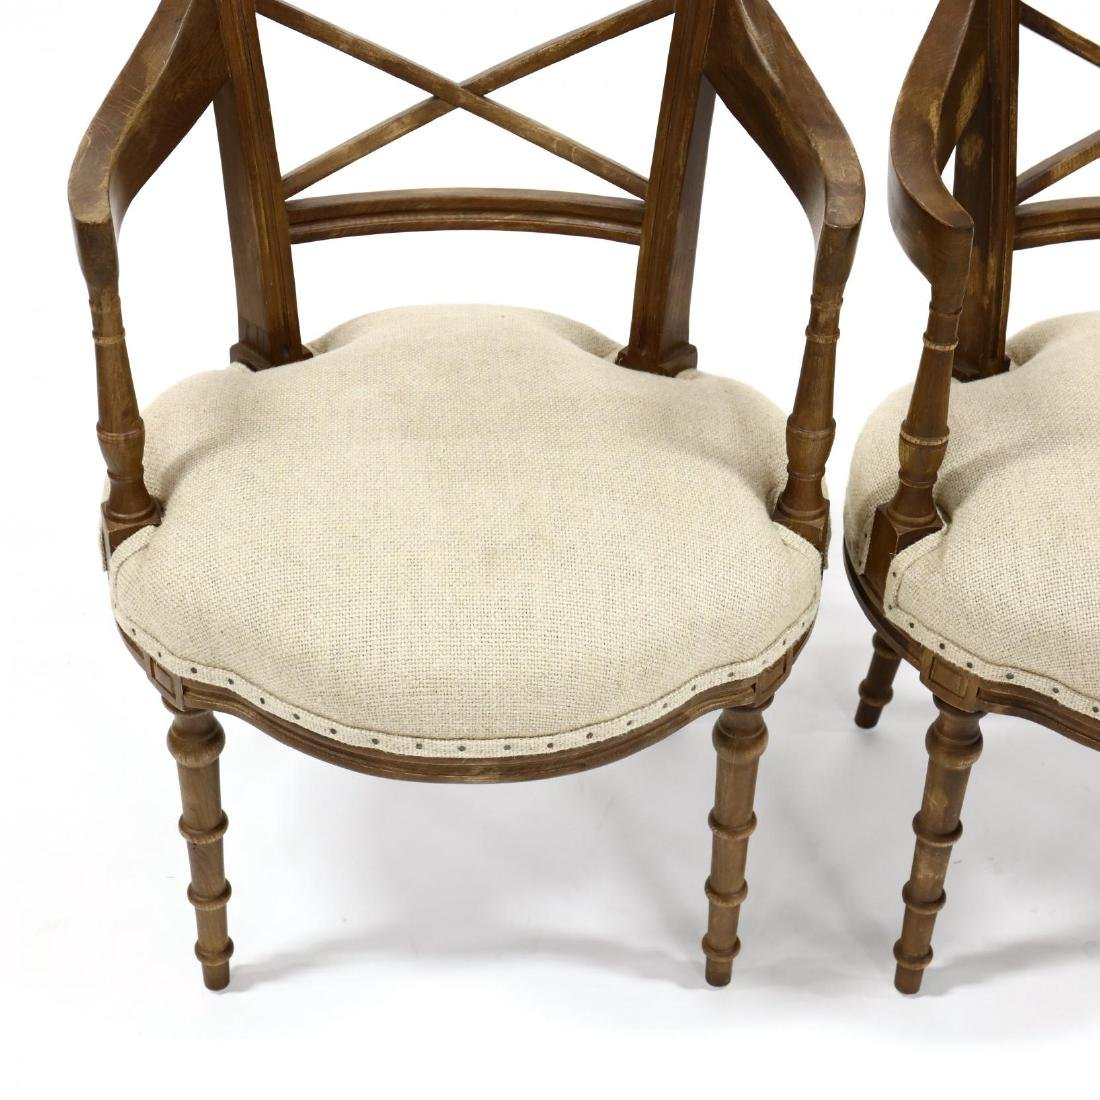 Park Hill Collection, Pair of Regency Style Arm Chairs - 2